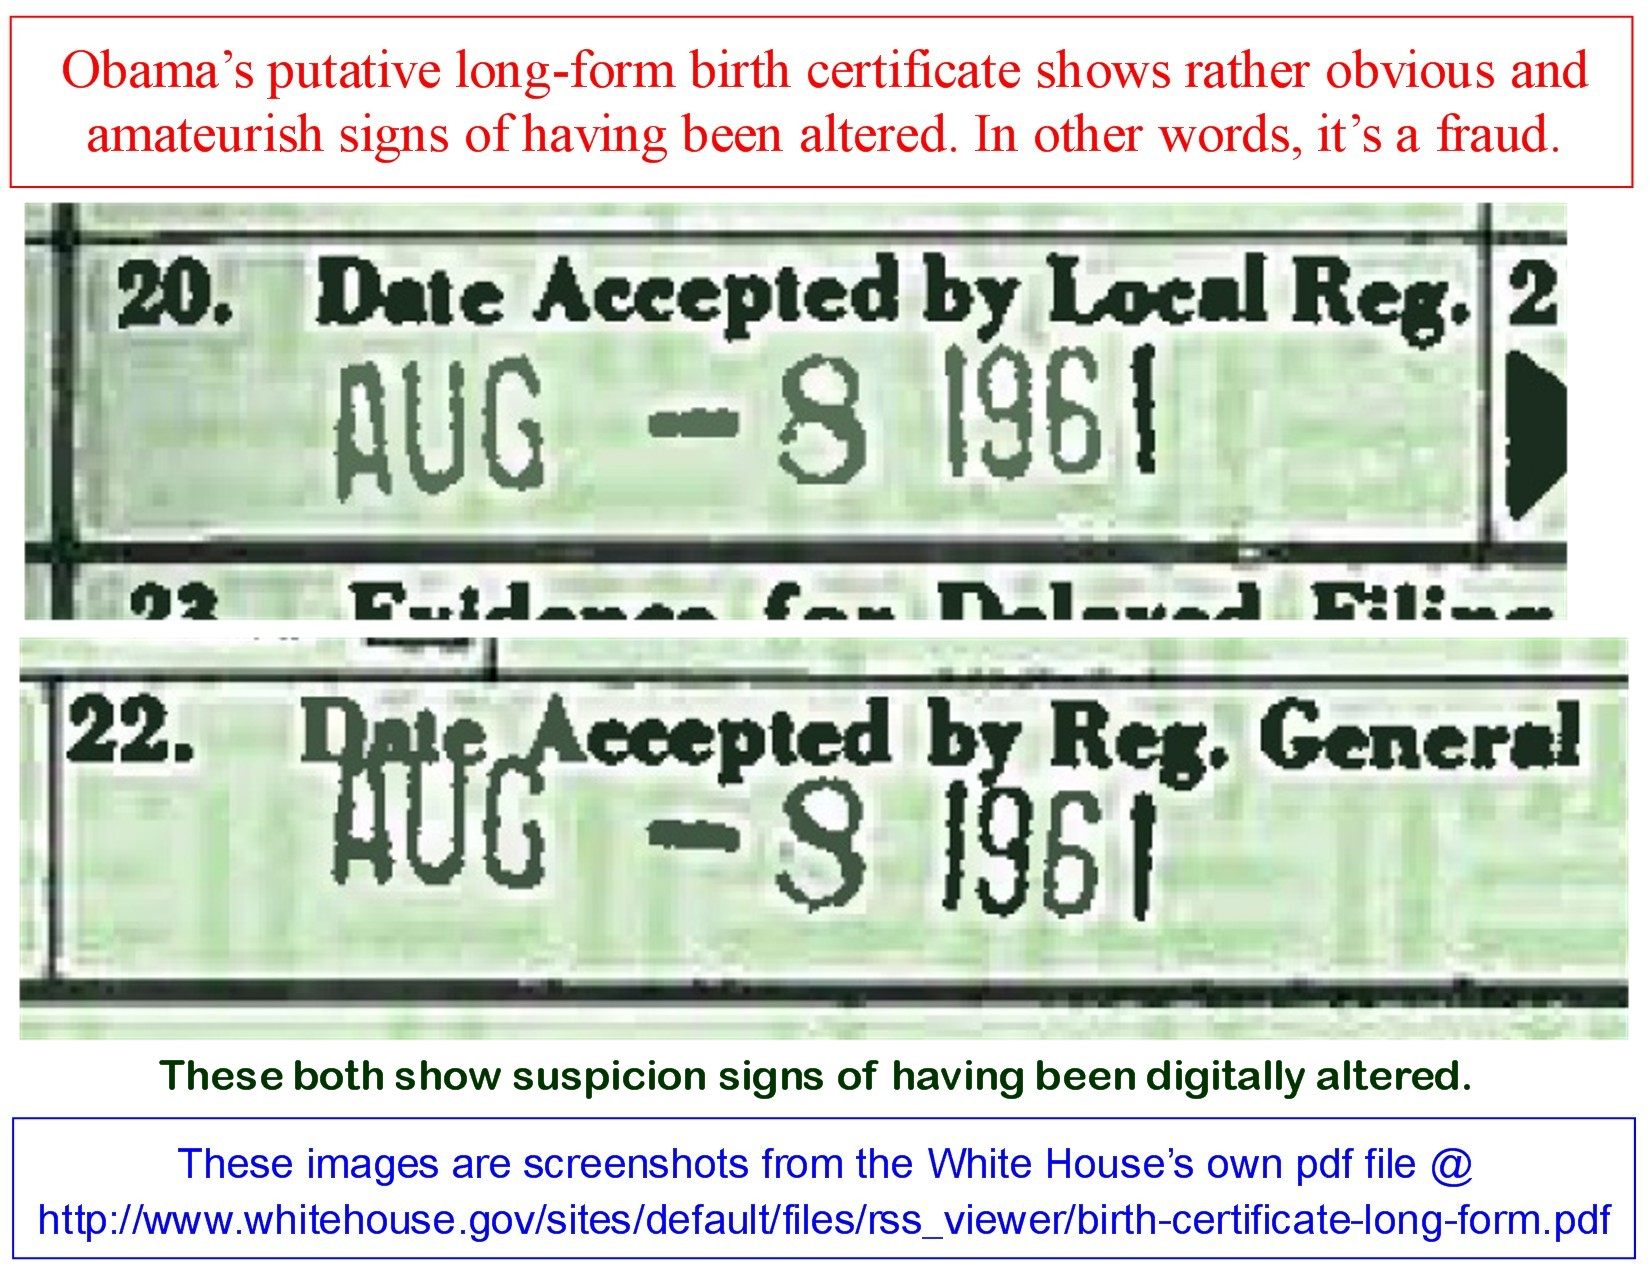 My Latest On The Birth Certificate